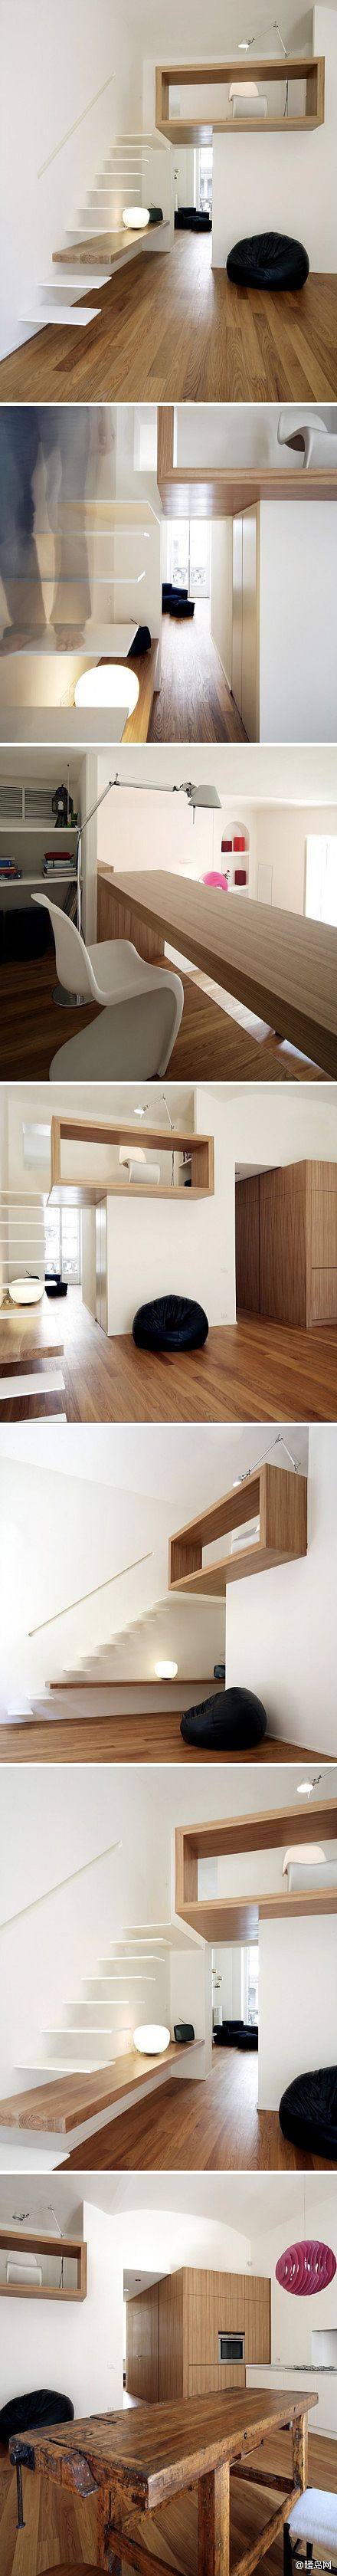 575 Best Attic Rooms And Loft Spaces Images On Pinterest How To Change A Shower Pull Cord Switch Diynotcom Diy Home Popular Image Welcome Saifou Inspiring Work Space Office Minimal Studio